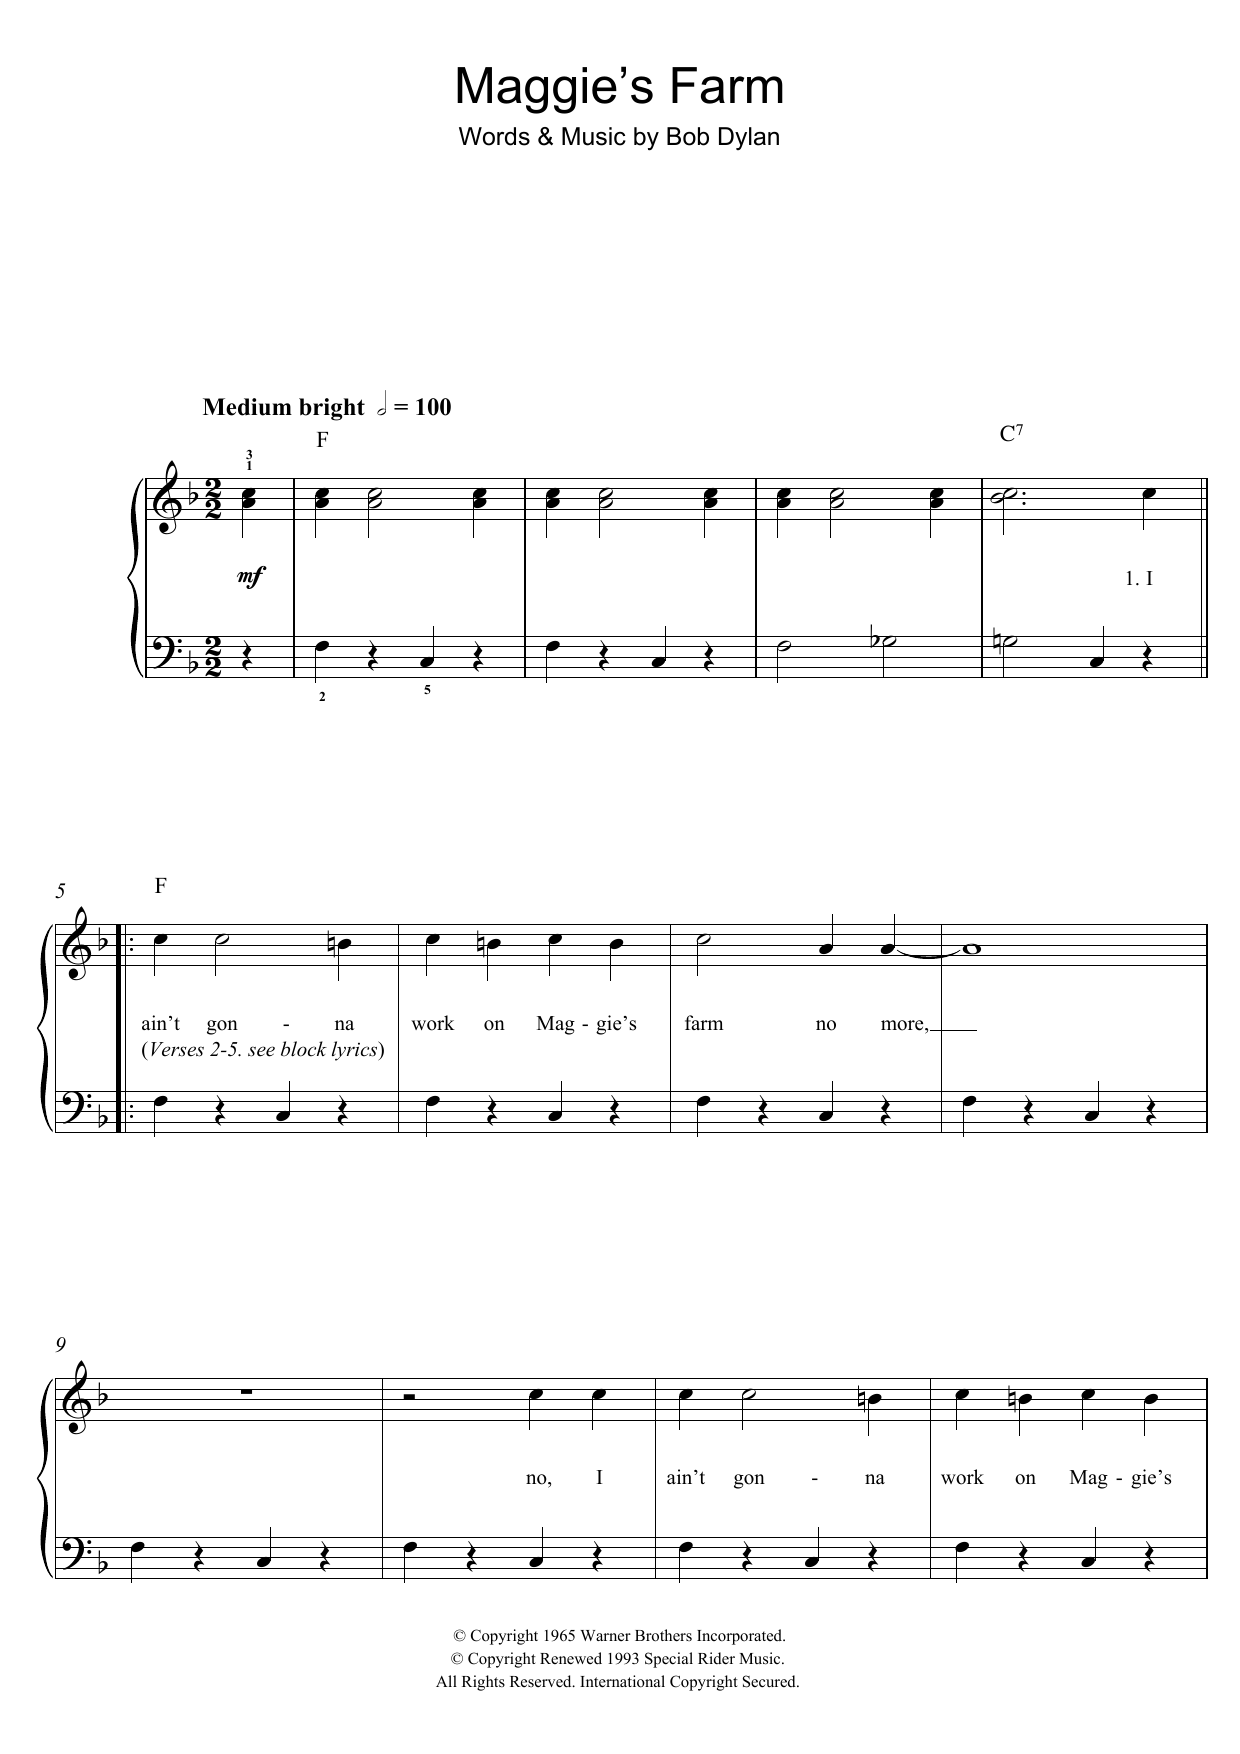 Maggie's Farm Sheet Music